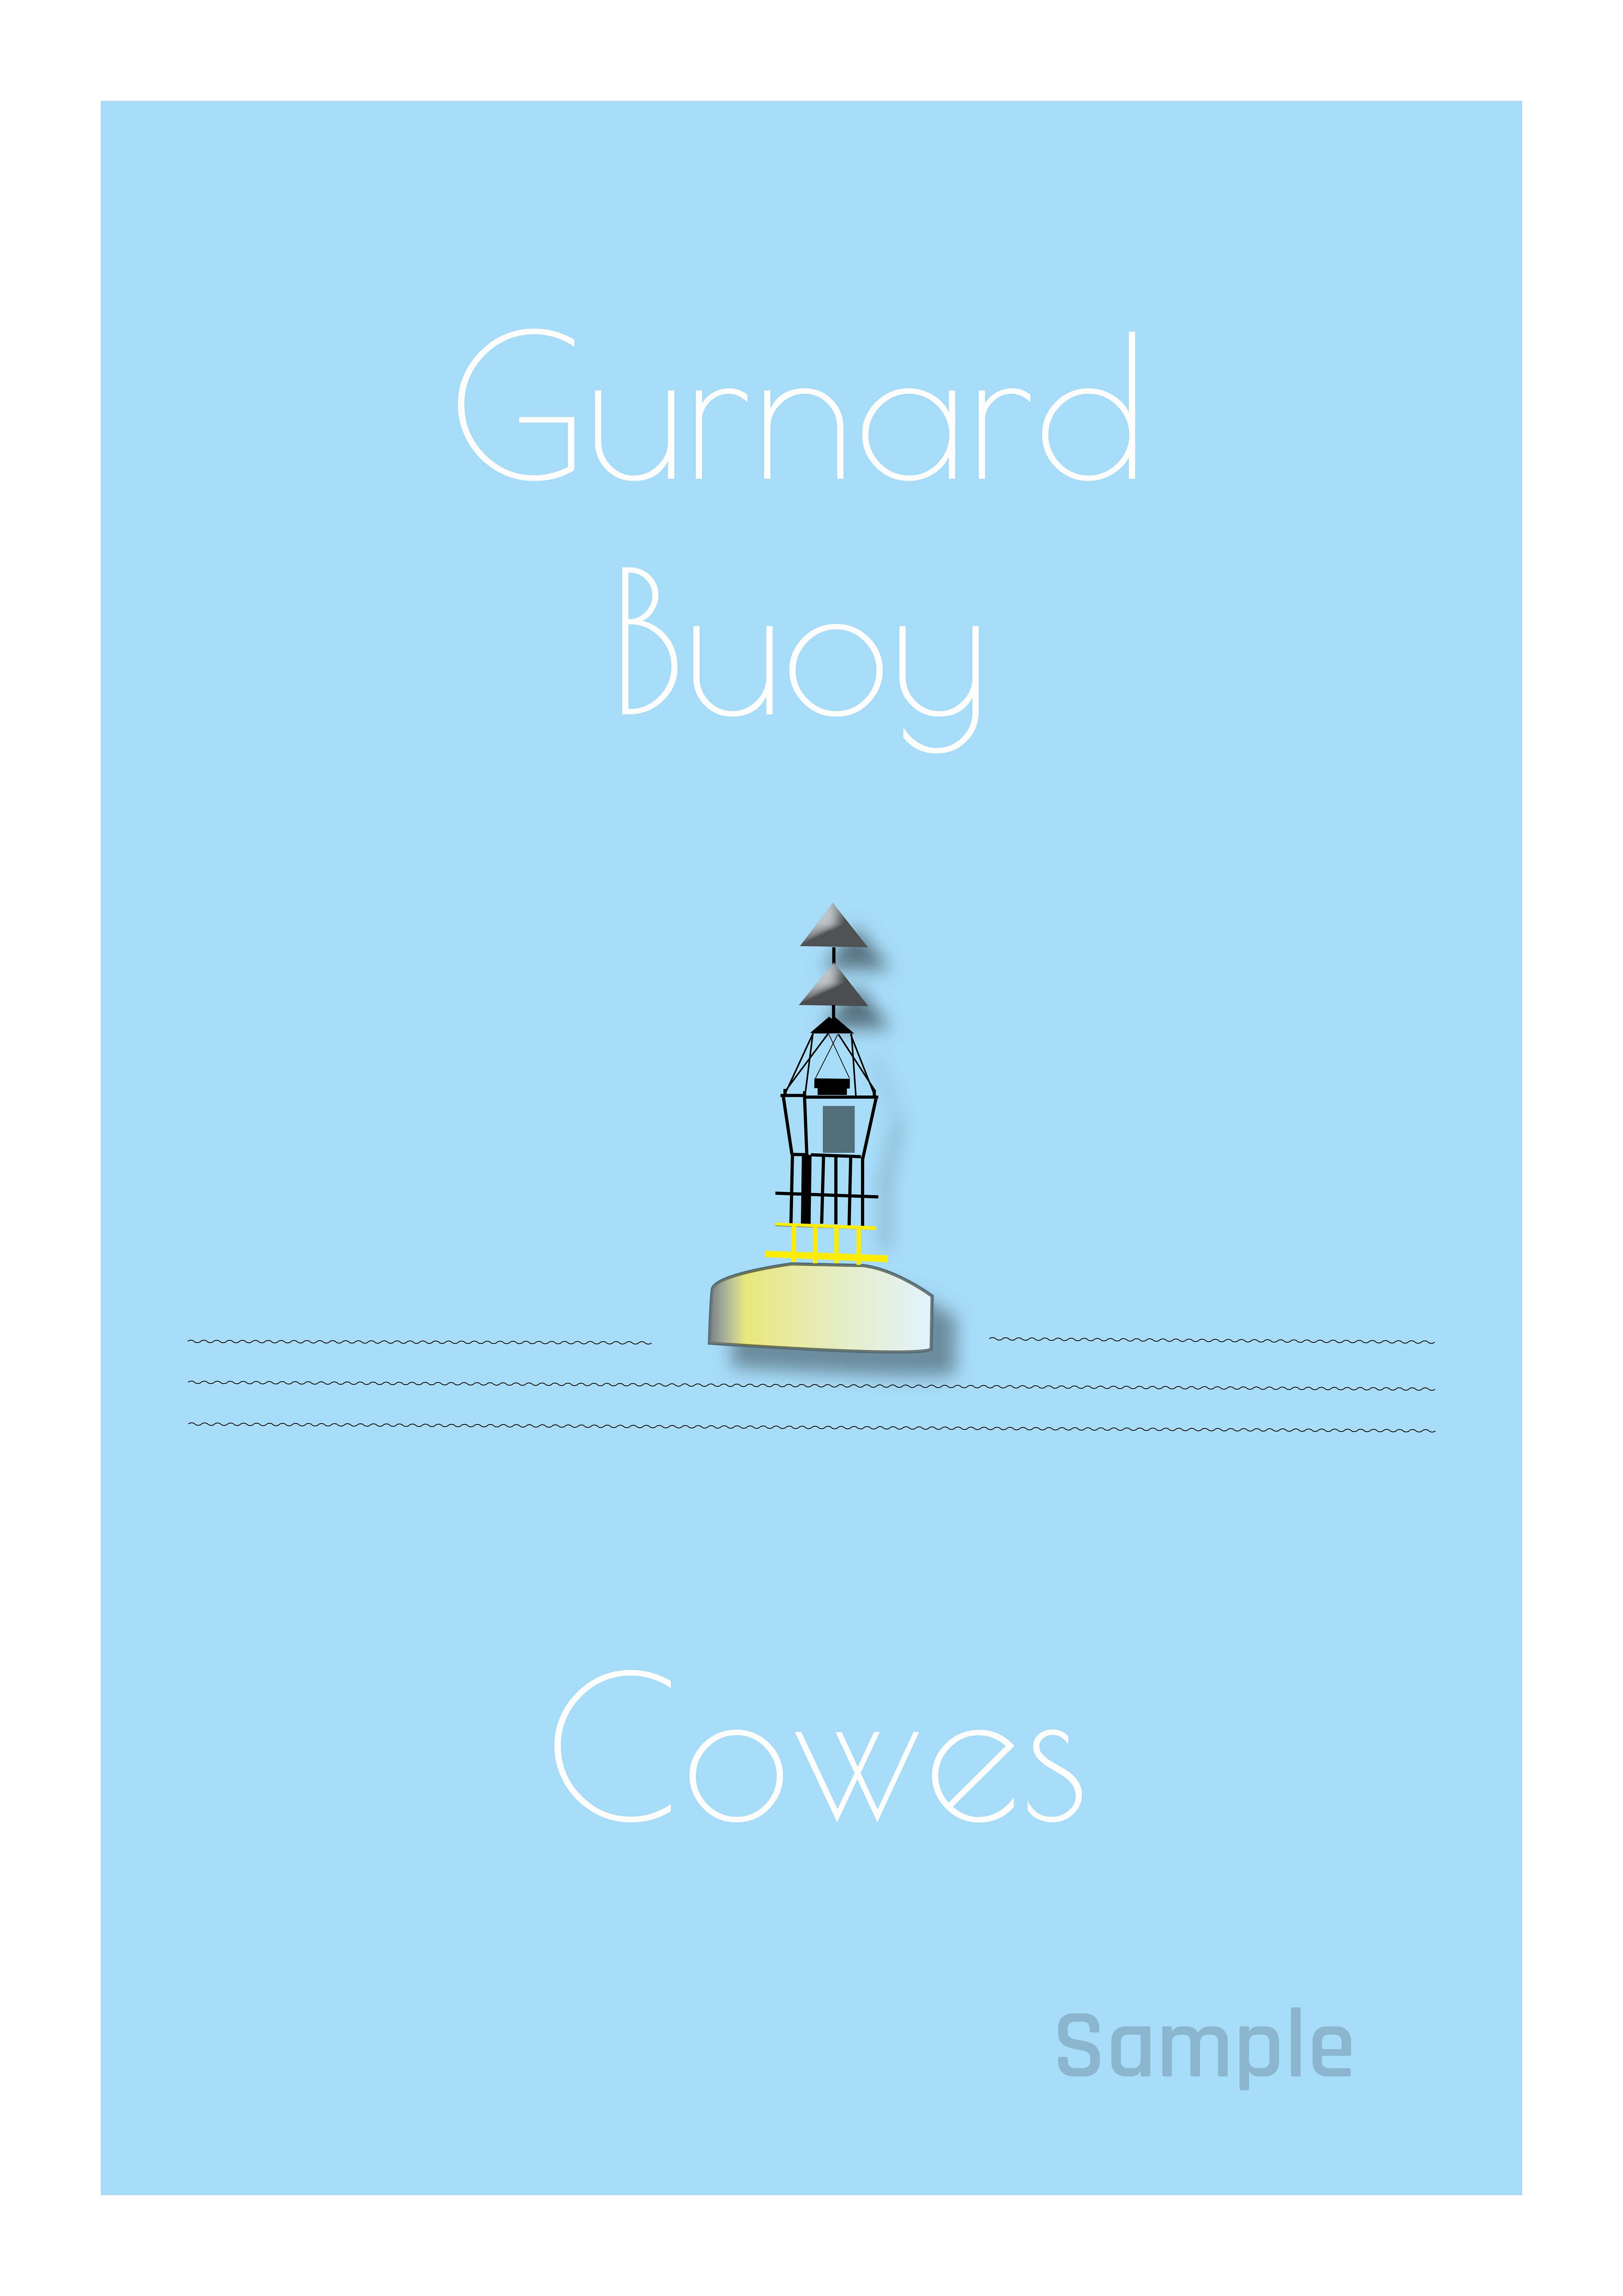 Gurnard Buoy - Illustration single postcard